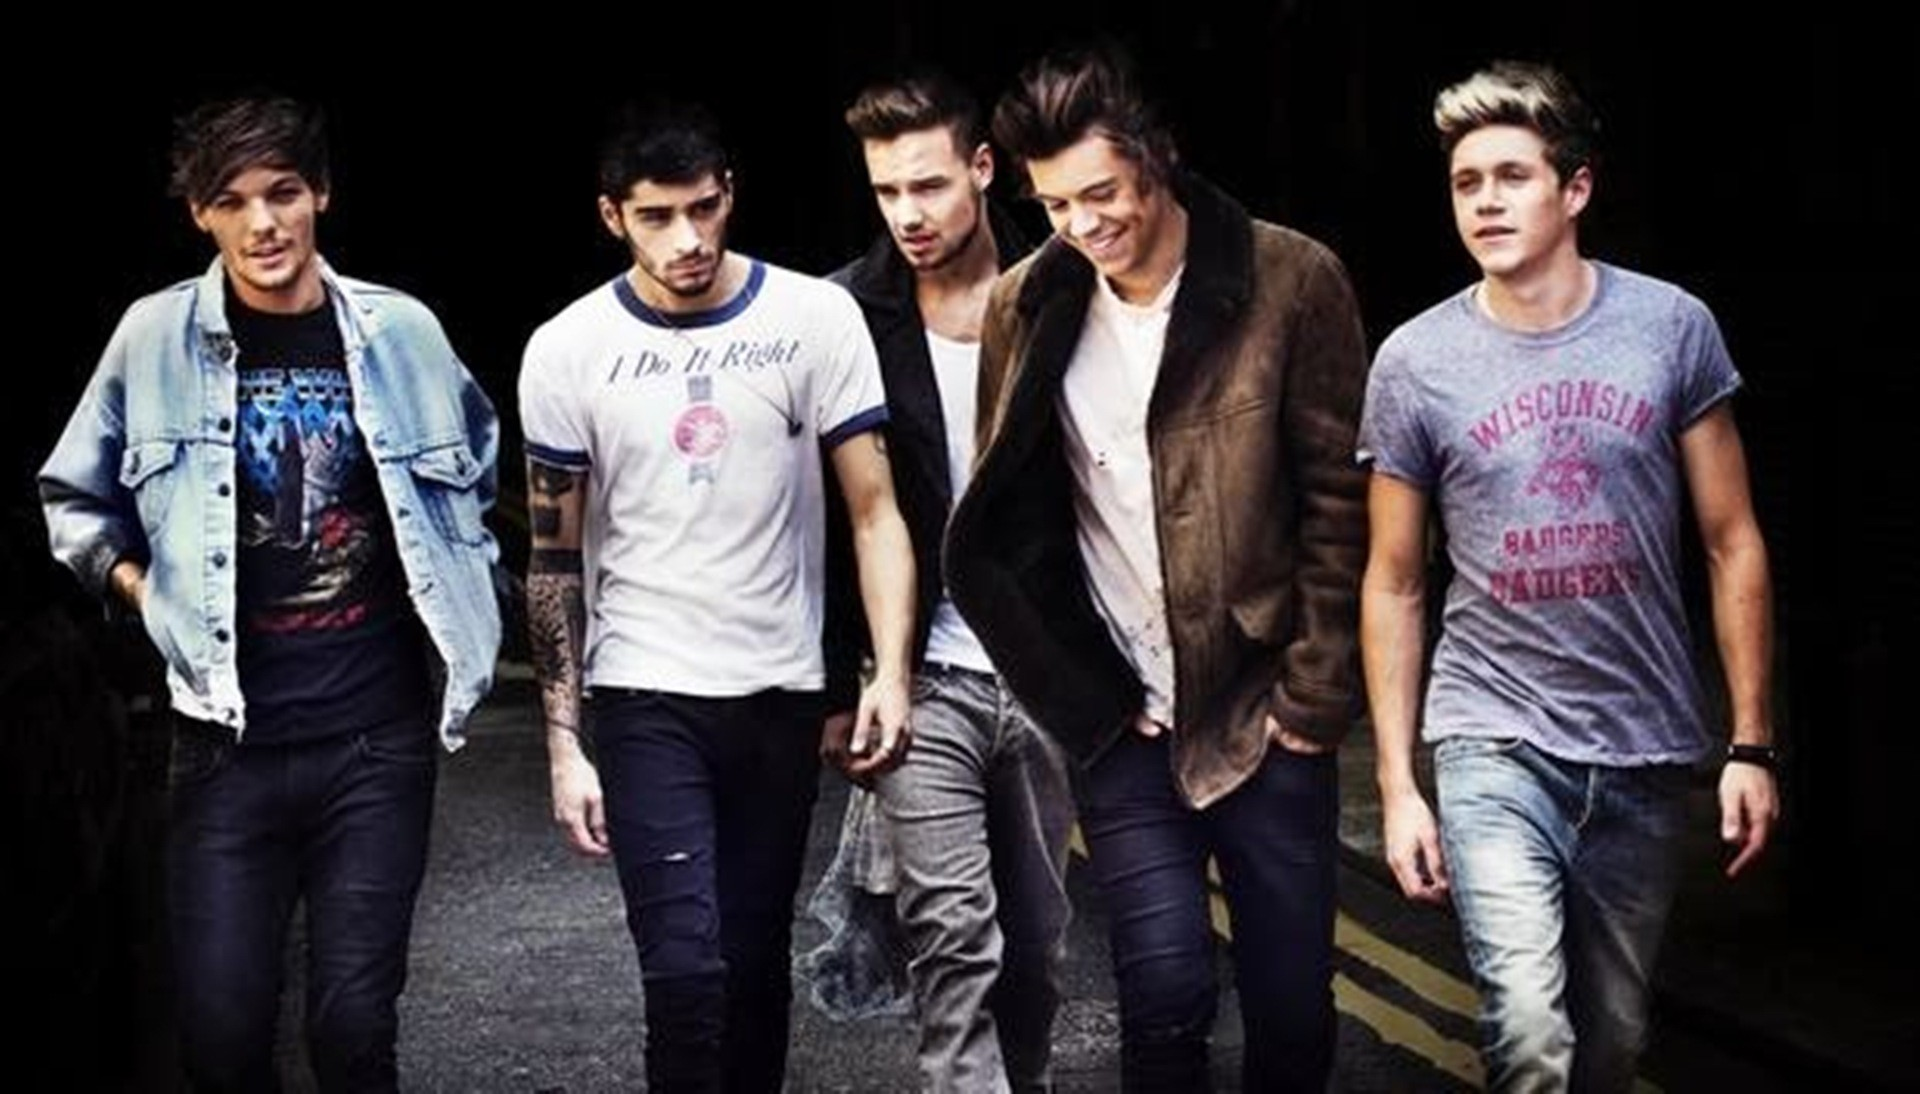 One direction wallpaper hd 67 images 1920x1094 one direction wallpapers voltagebd Image collections